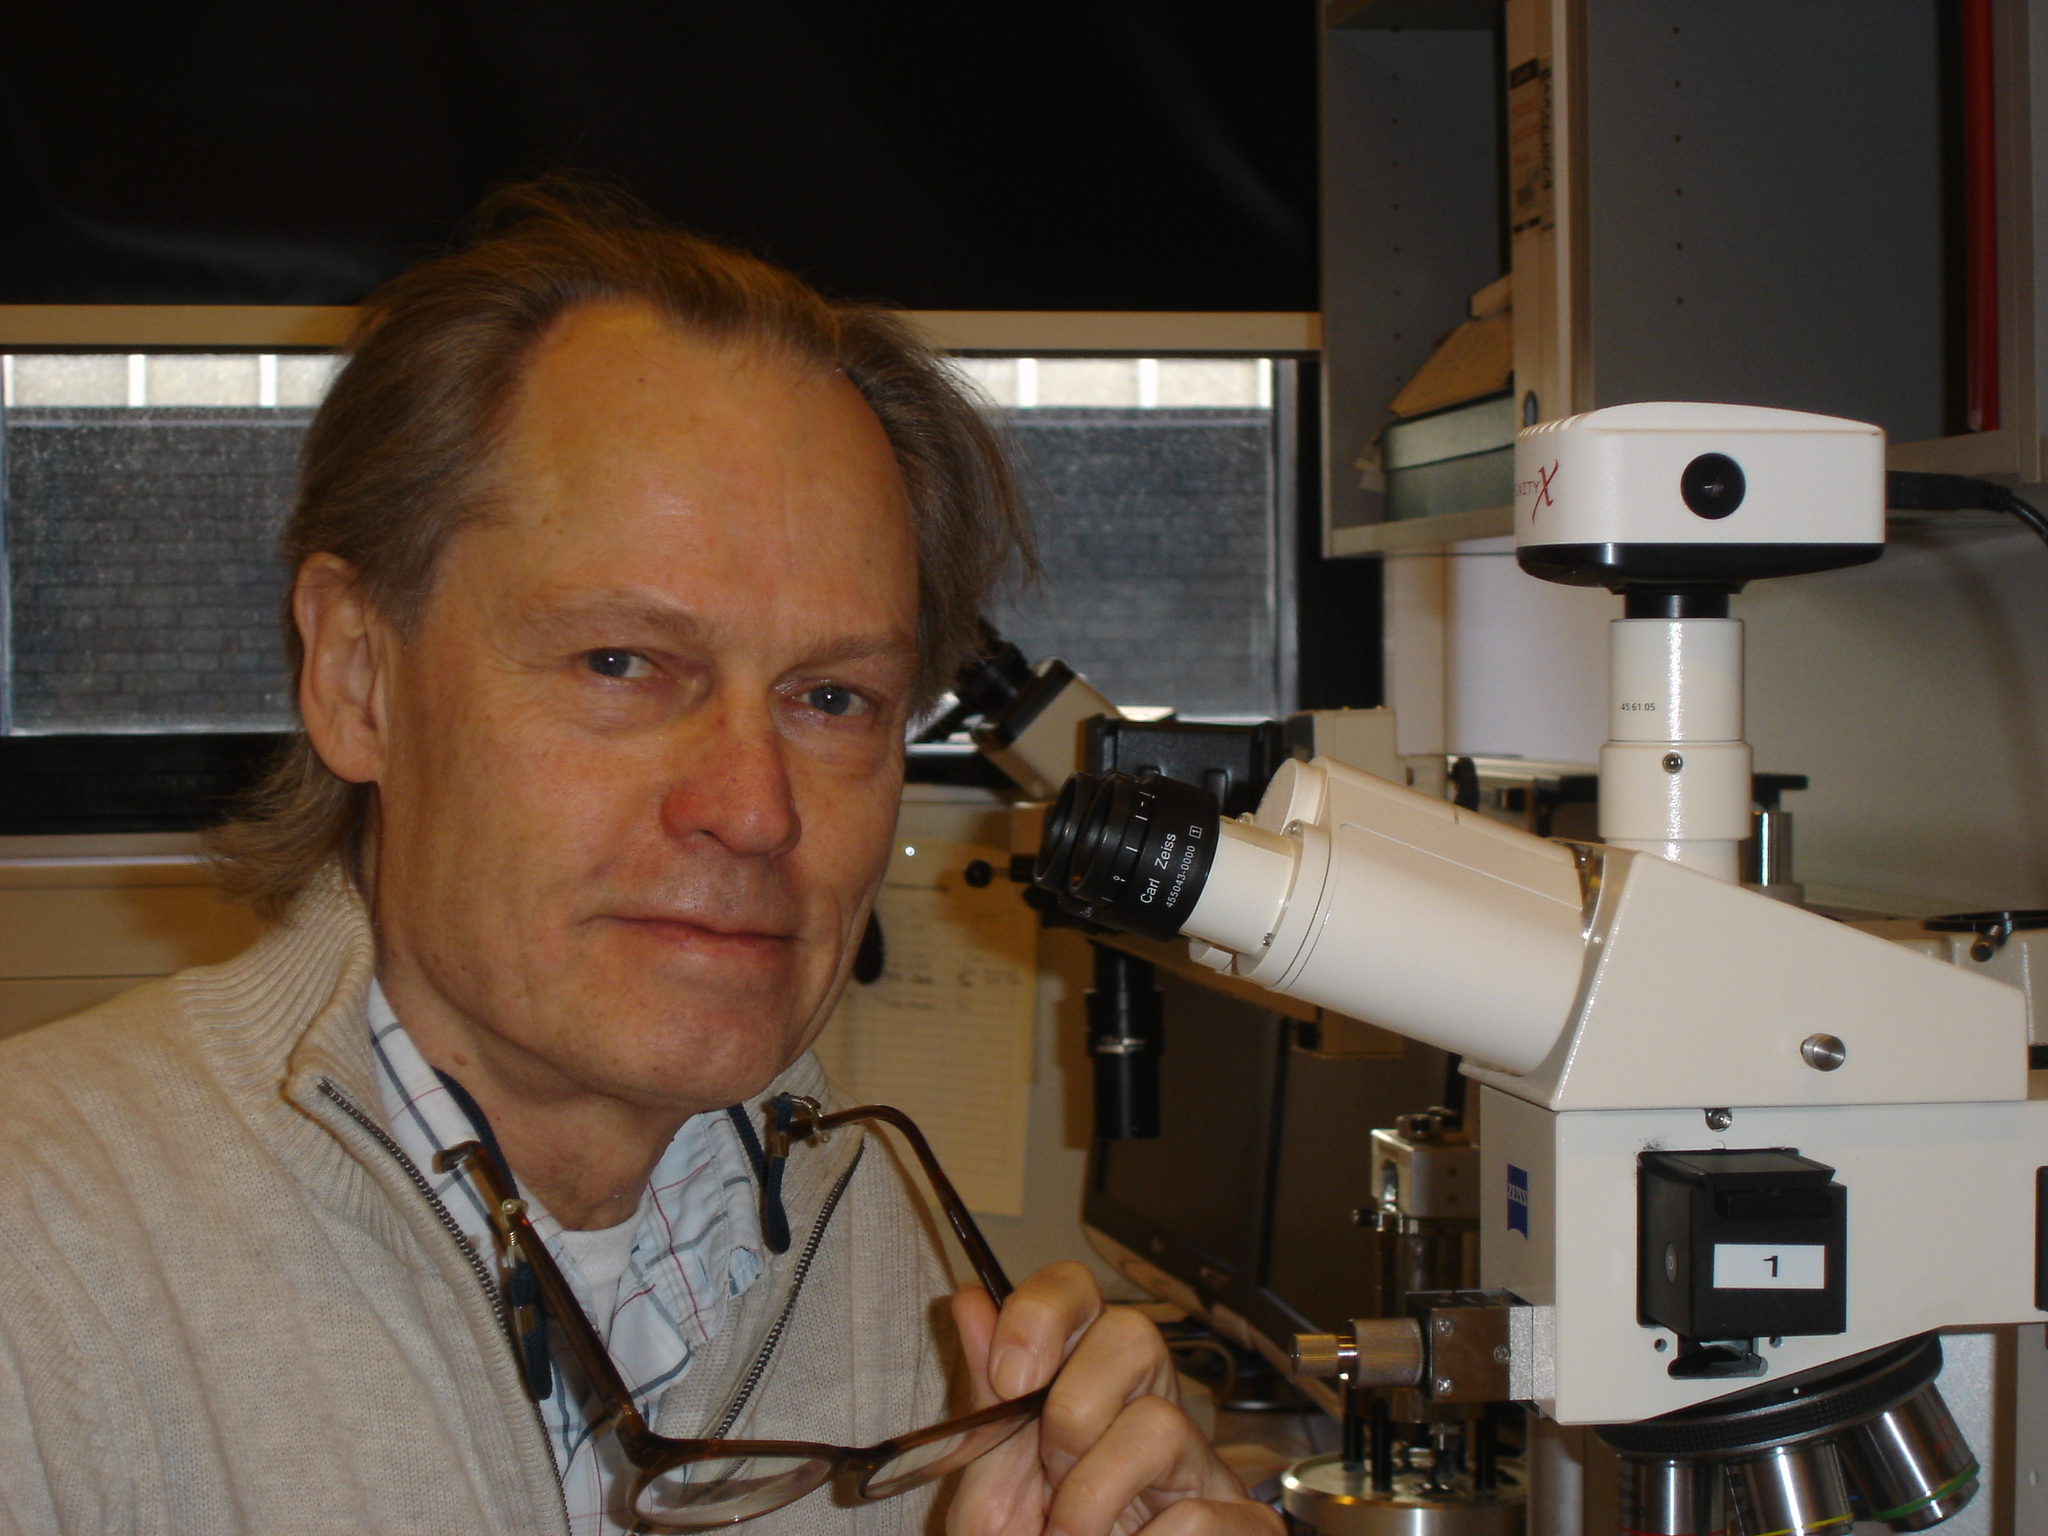 Caption: Dr. Niels Harrit at microscope